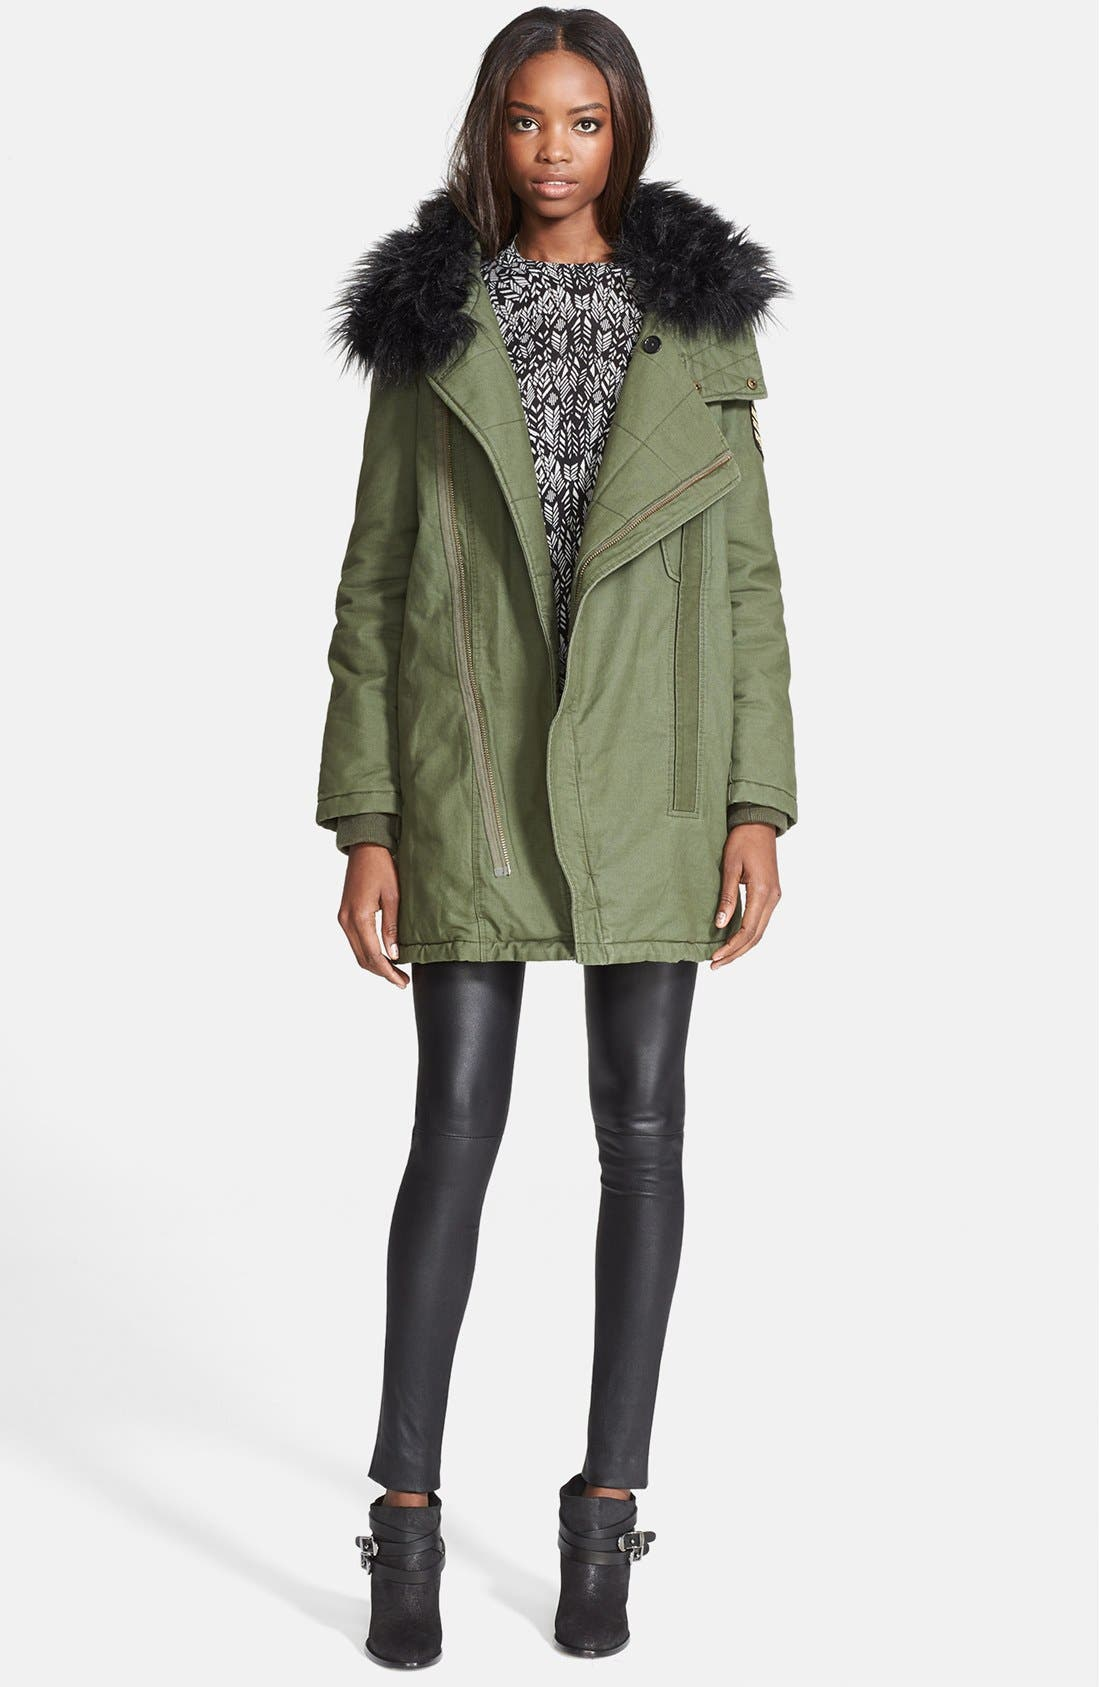 Main Image - Zadig & Voltaire 'Kily' Faux Fur Collar Military Jacket